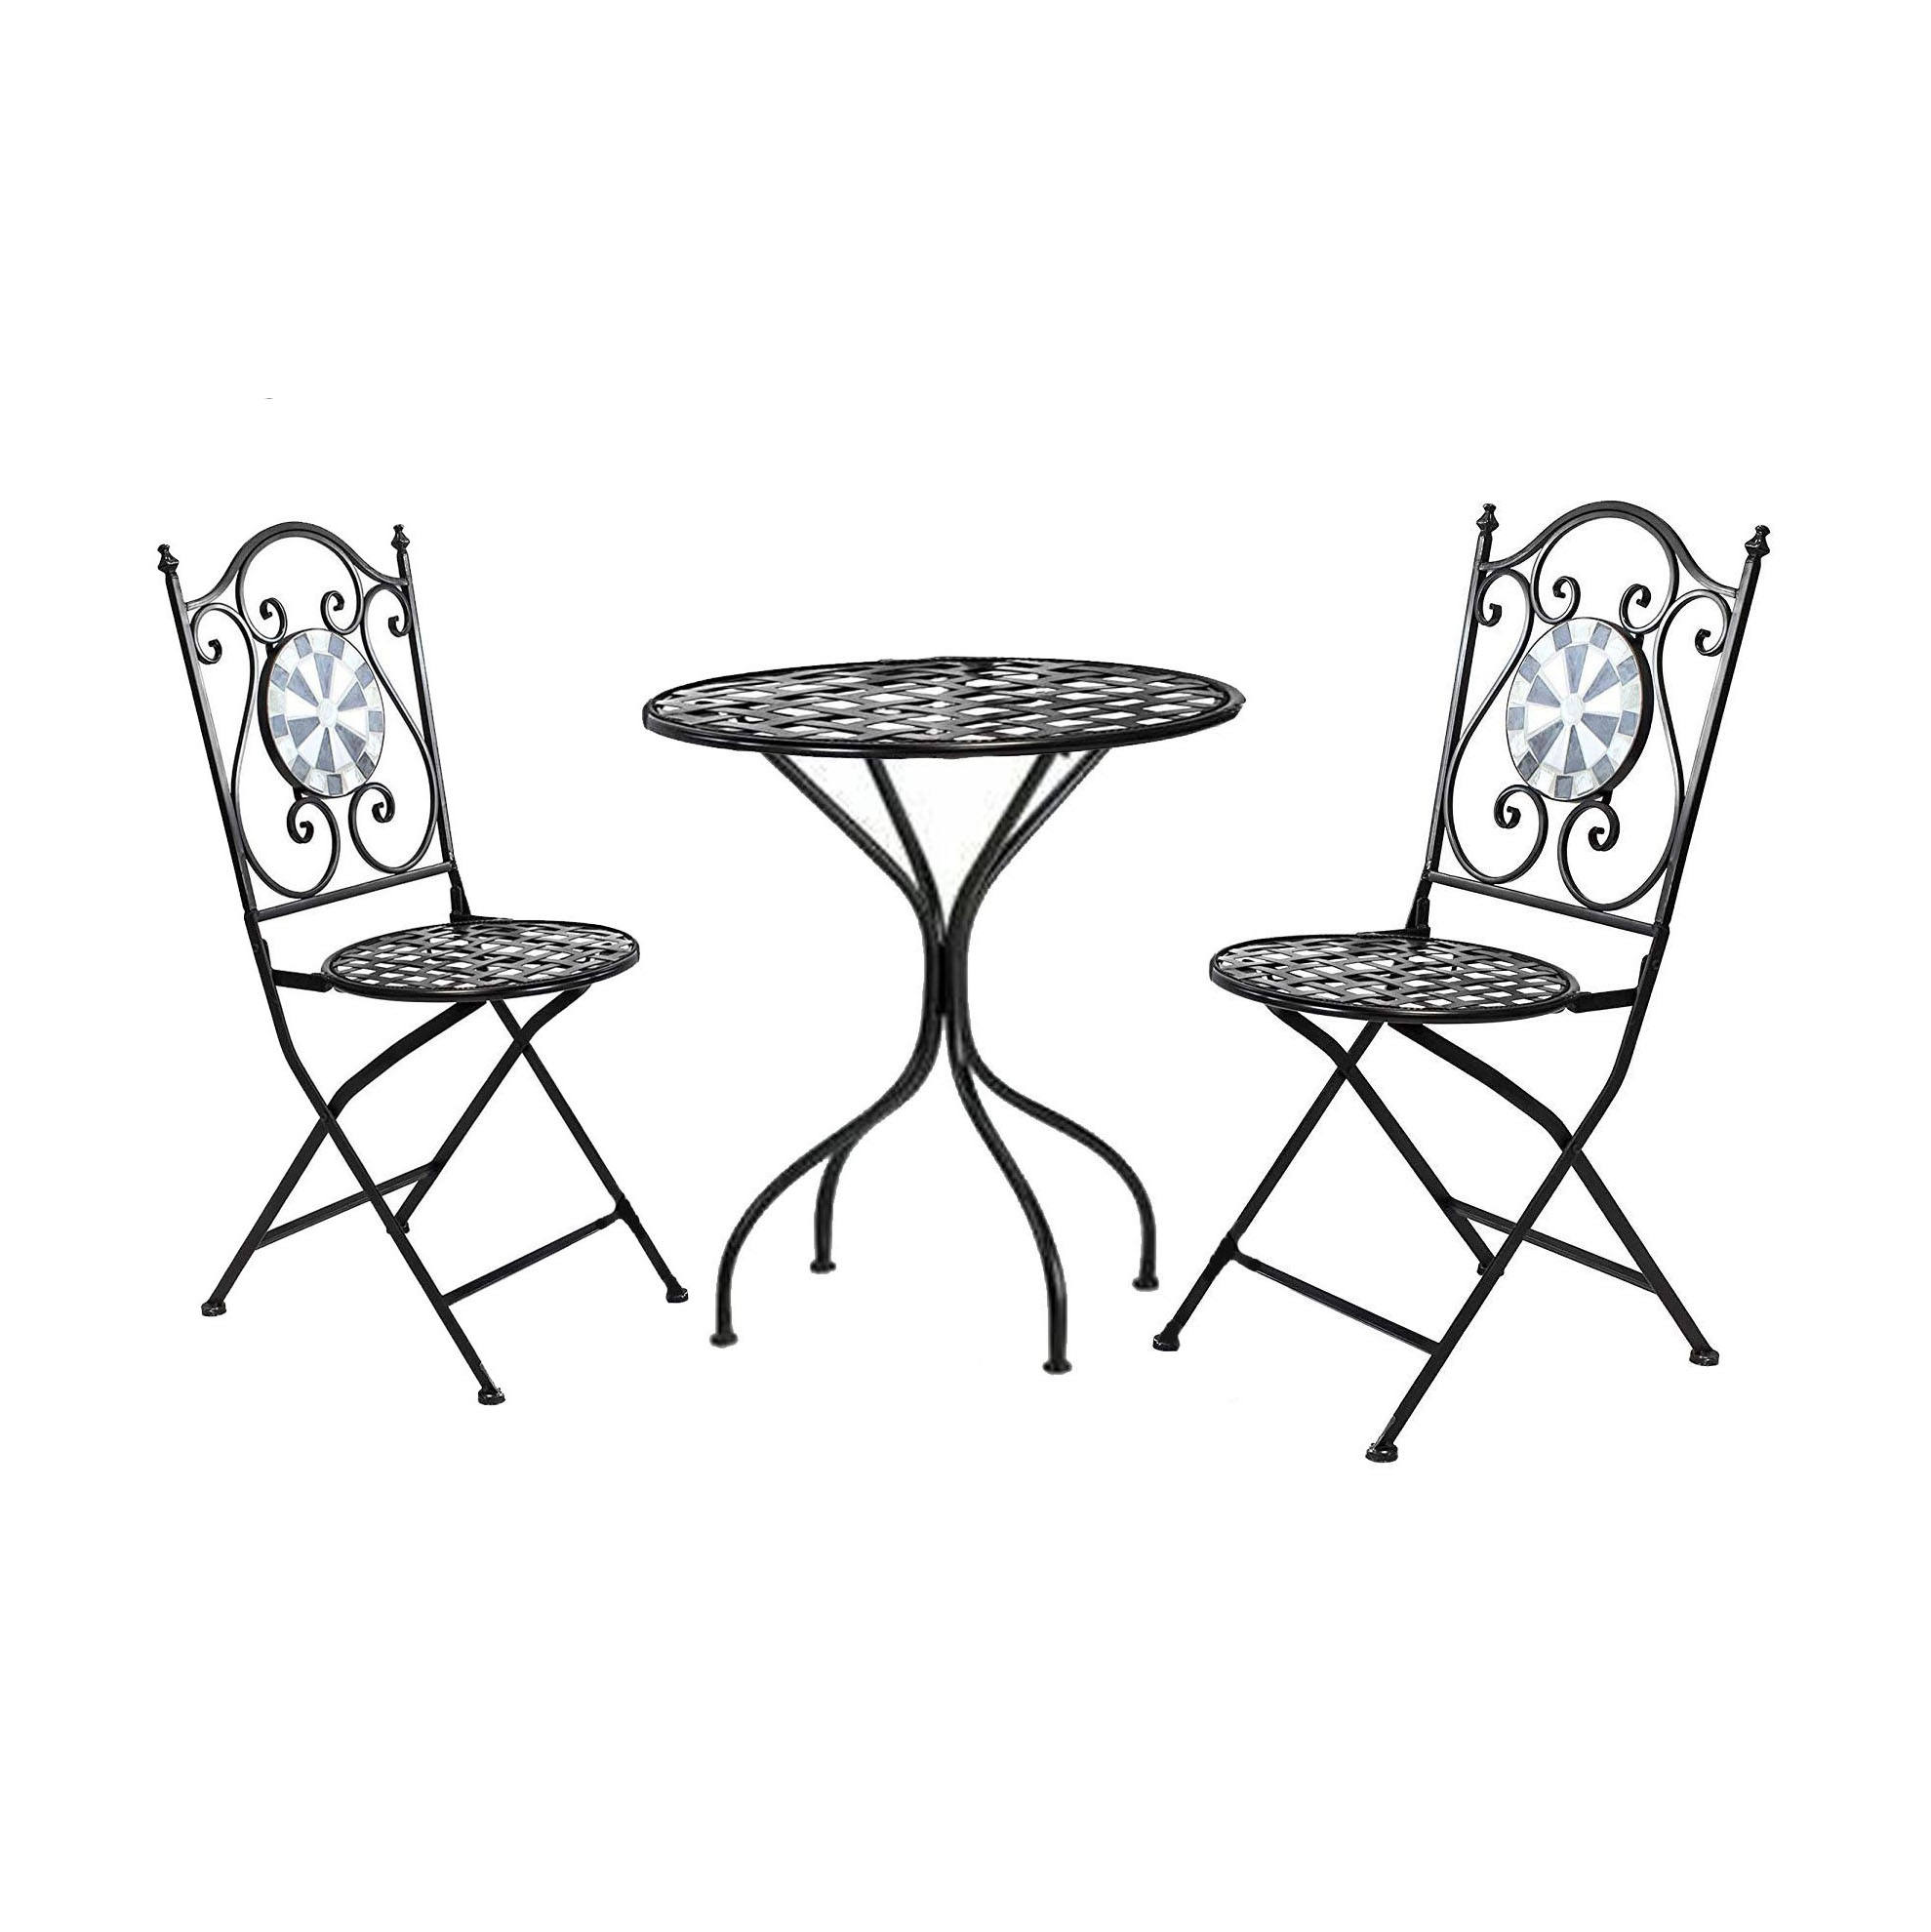 3 Piece Mosaic Metal Wrought Iron Outdoor Furniture Foldable Bistro Cafe Set